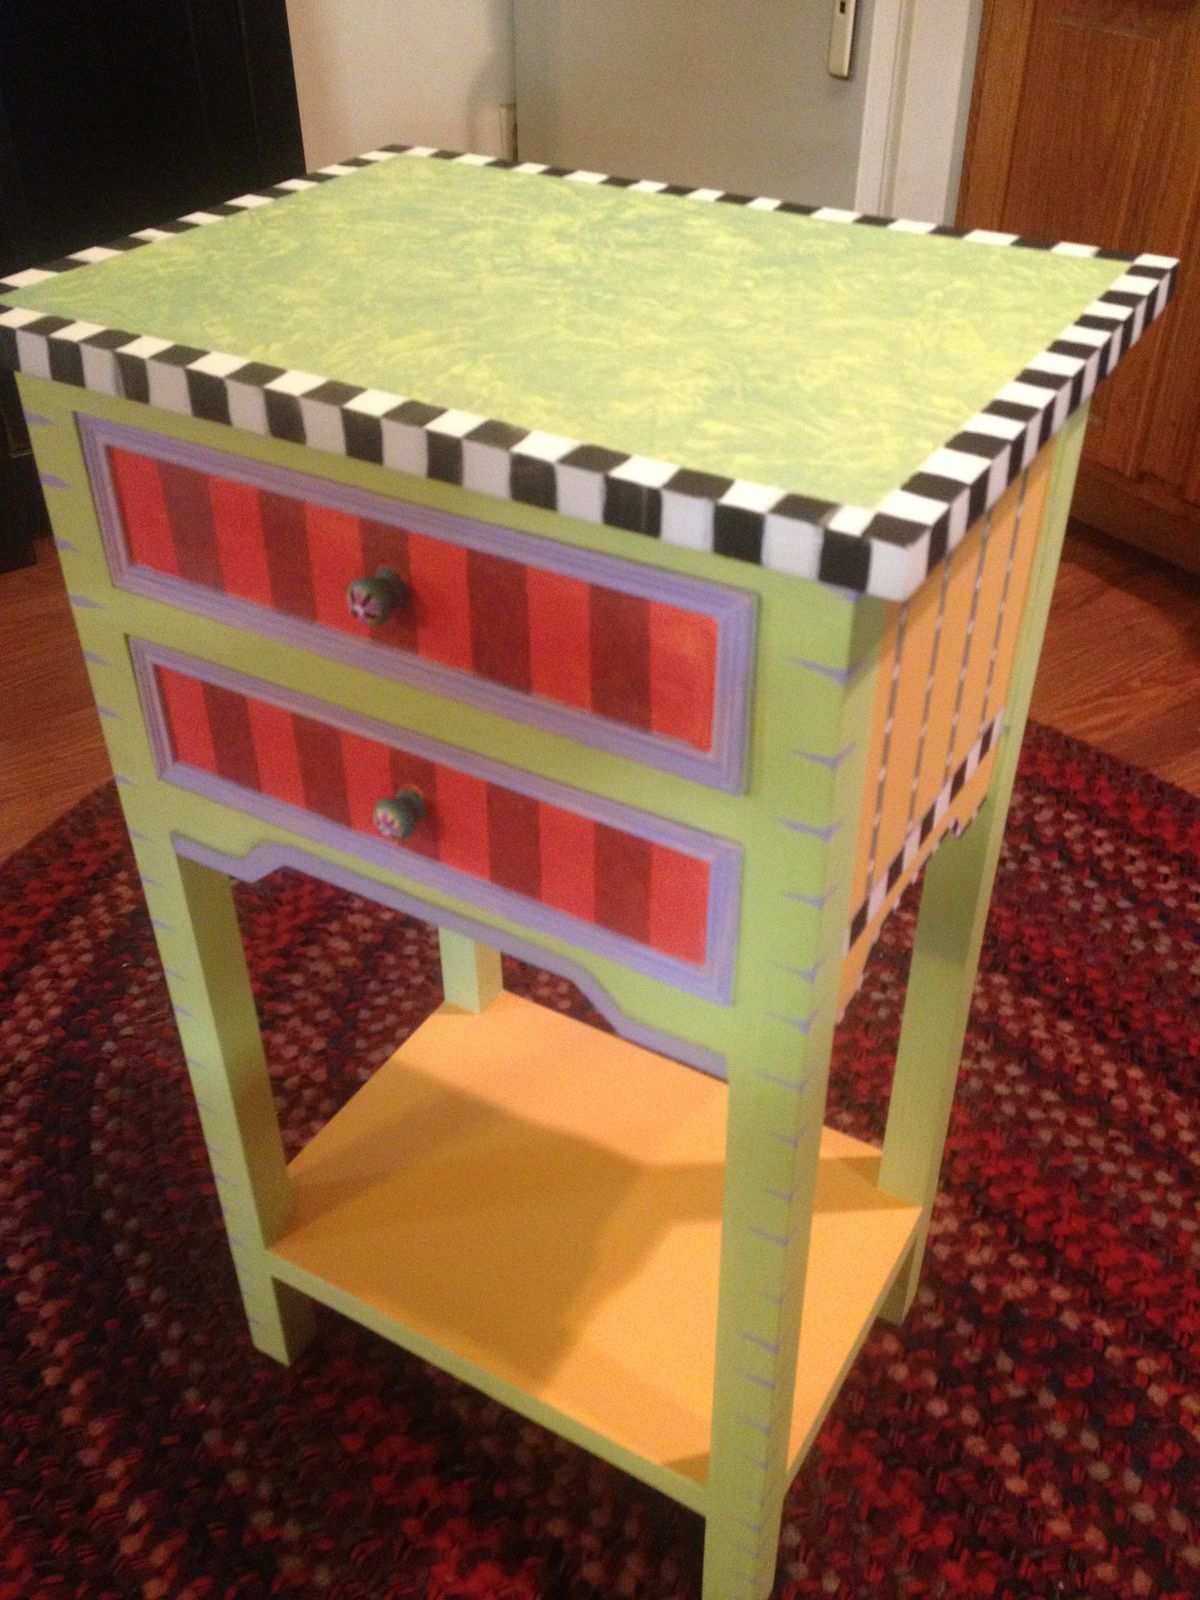 Painted Furniture Funky Painted Furniture And Whimsical Painted Furniture On Pinterest